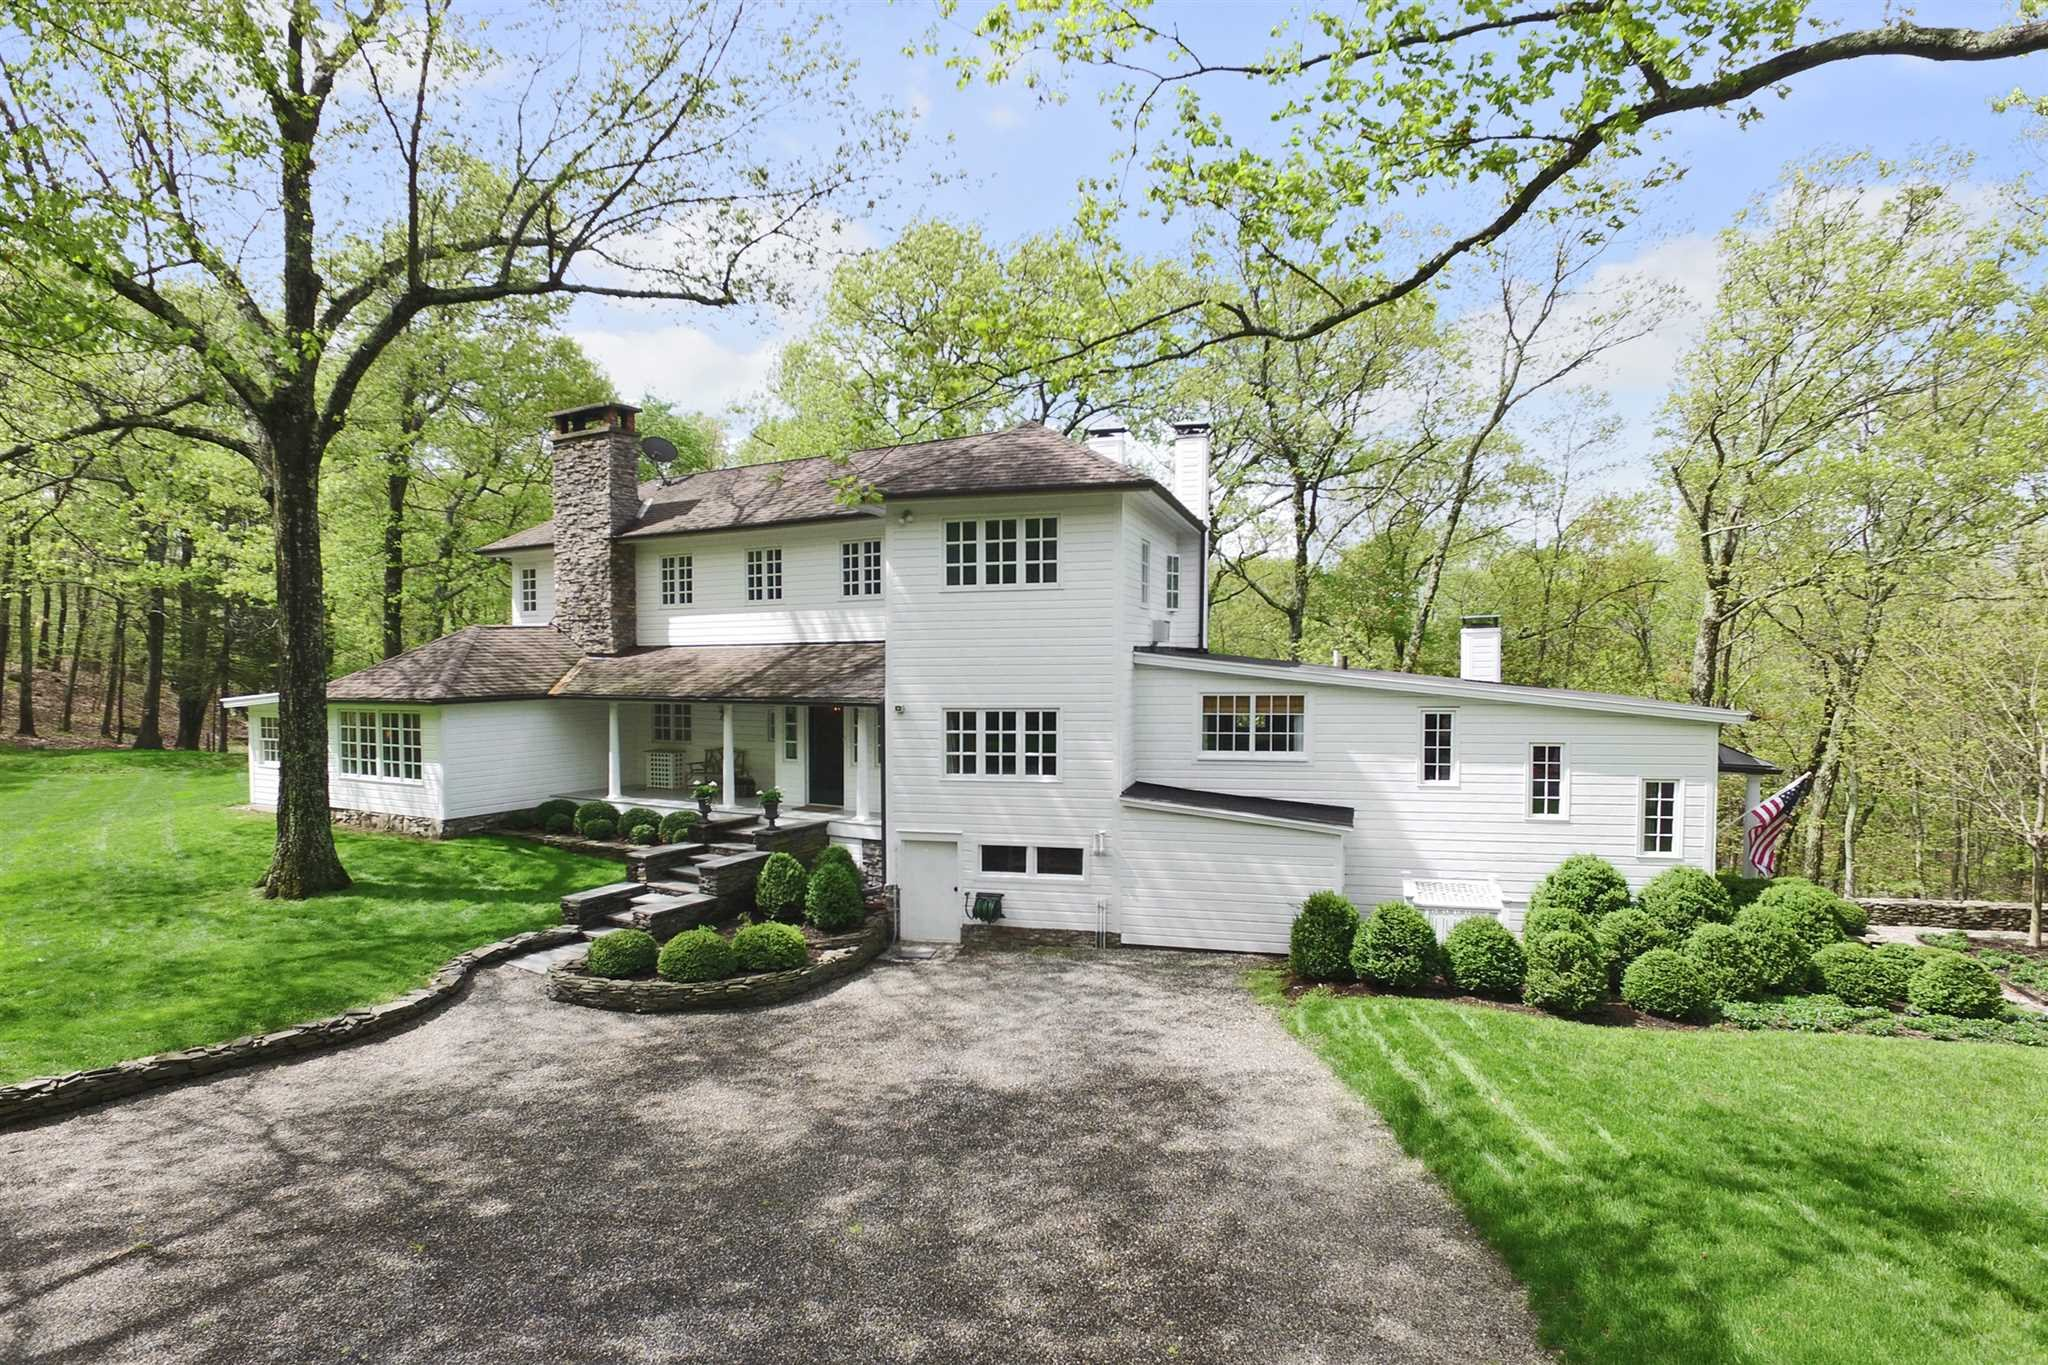 Single Family Home for Sale at 38 BANGALL AMENIA Road 38 BANGALL AMENIA Road Stanfordville, New York 12581 United States